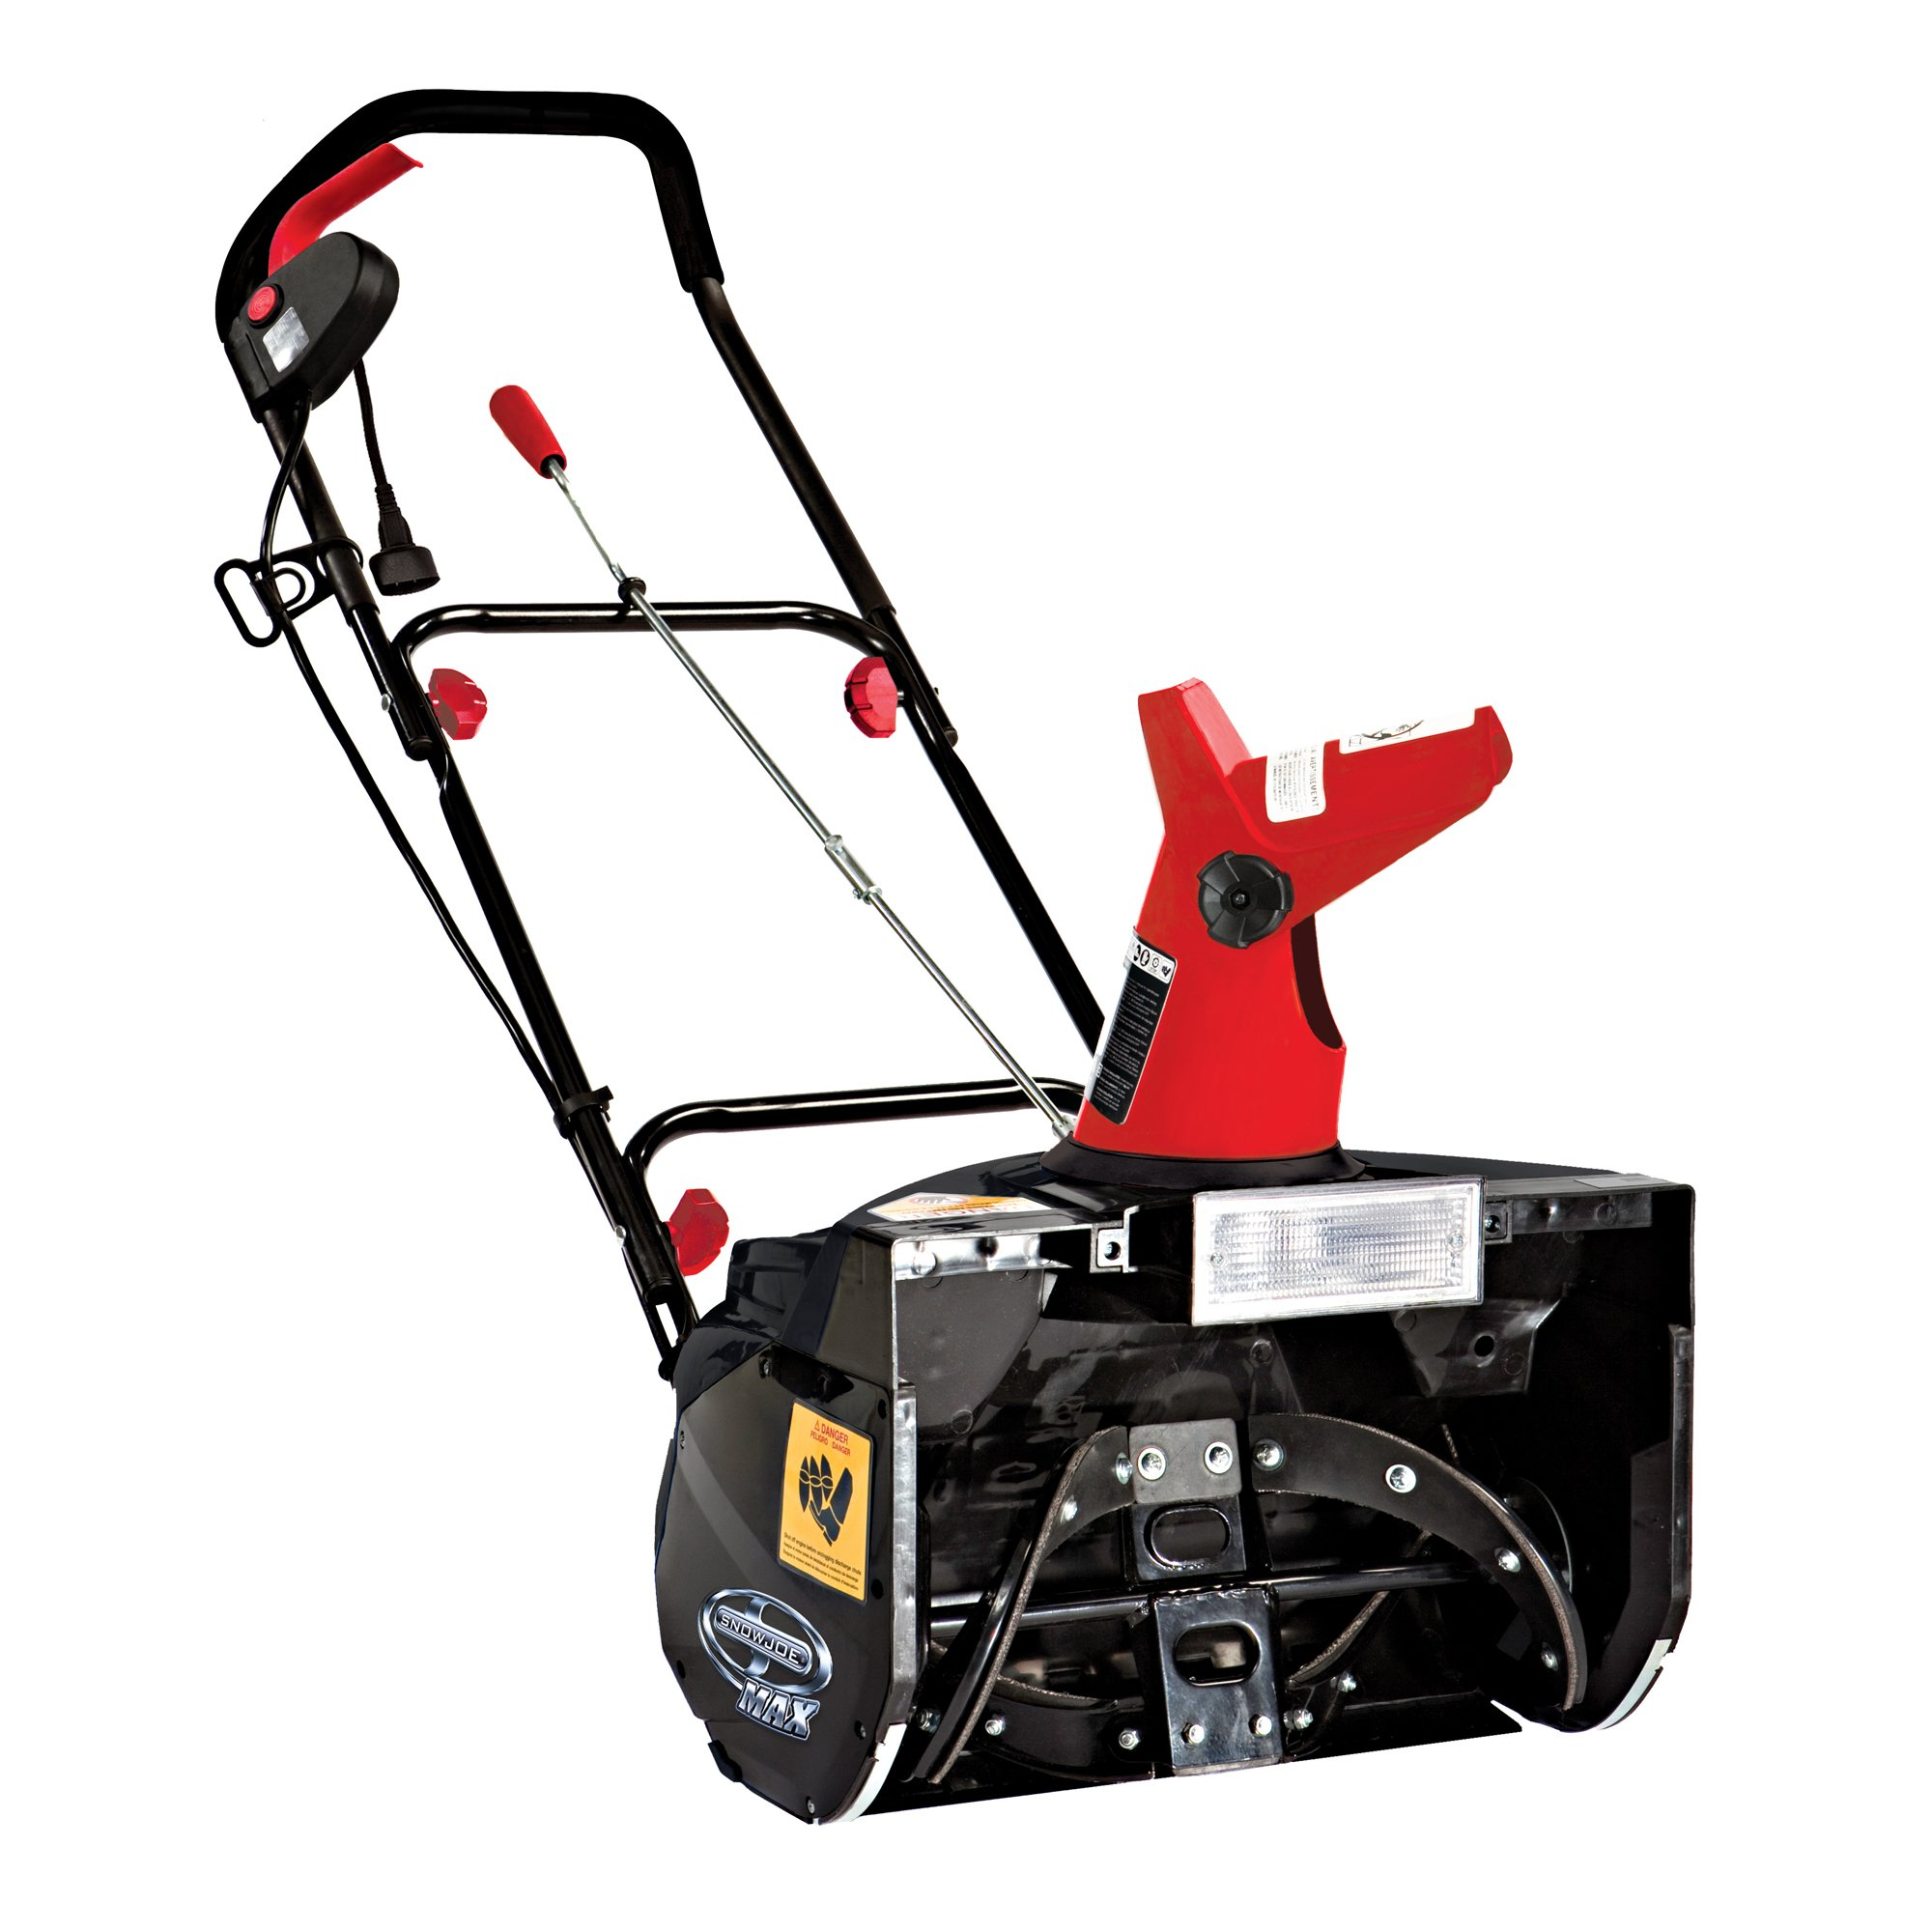 Snow Joe SJM988-RM Factory Refurbished Electric Snow Thrower with Light